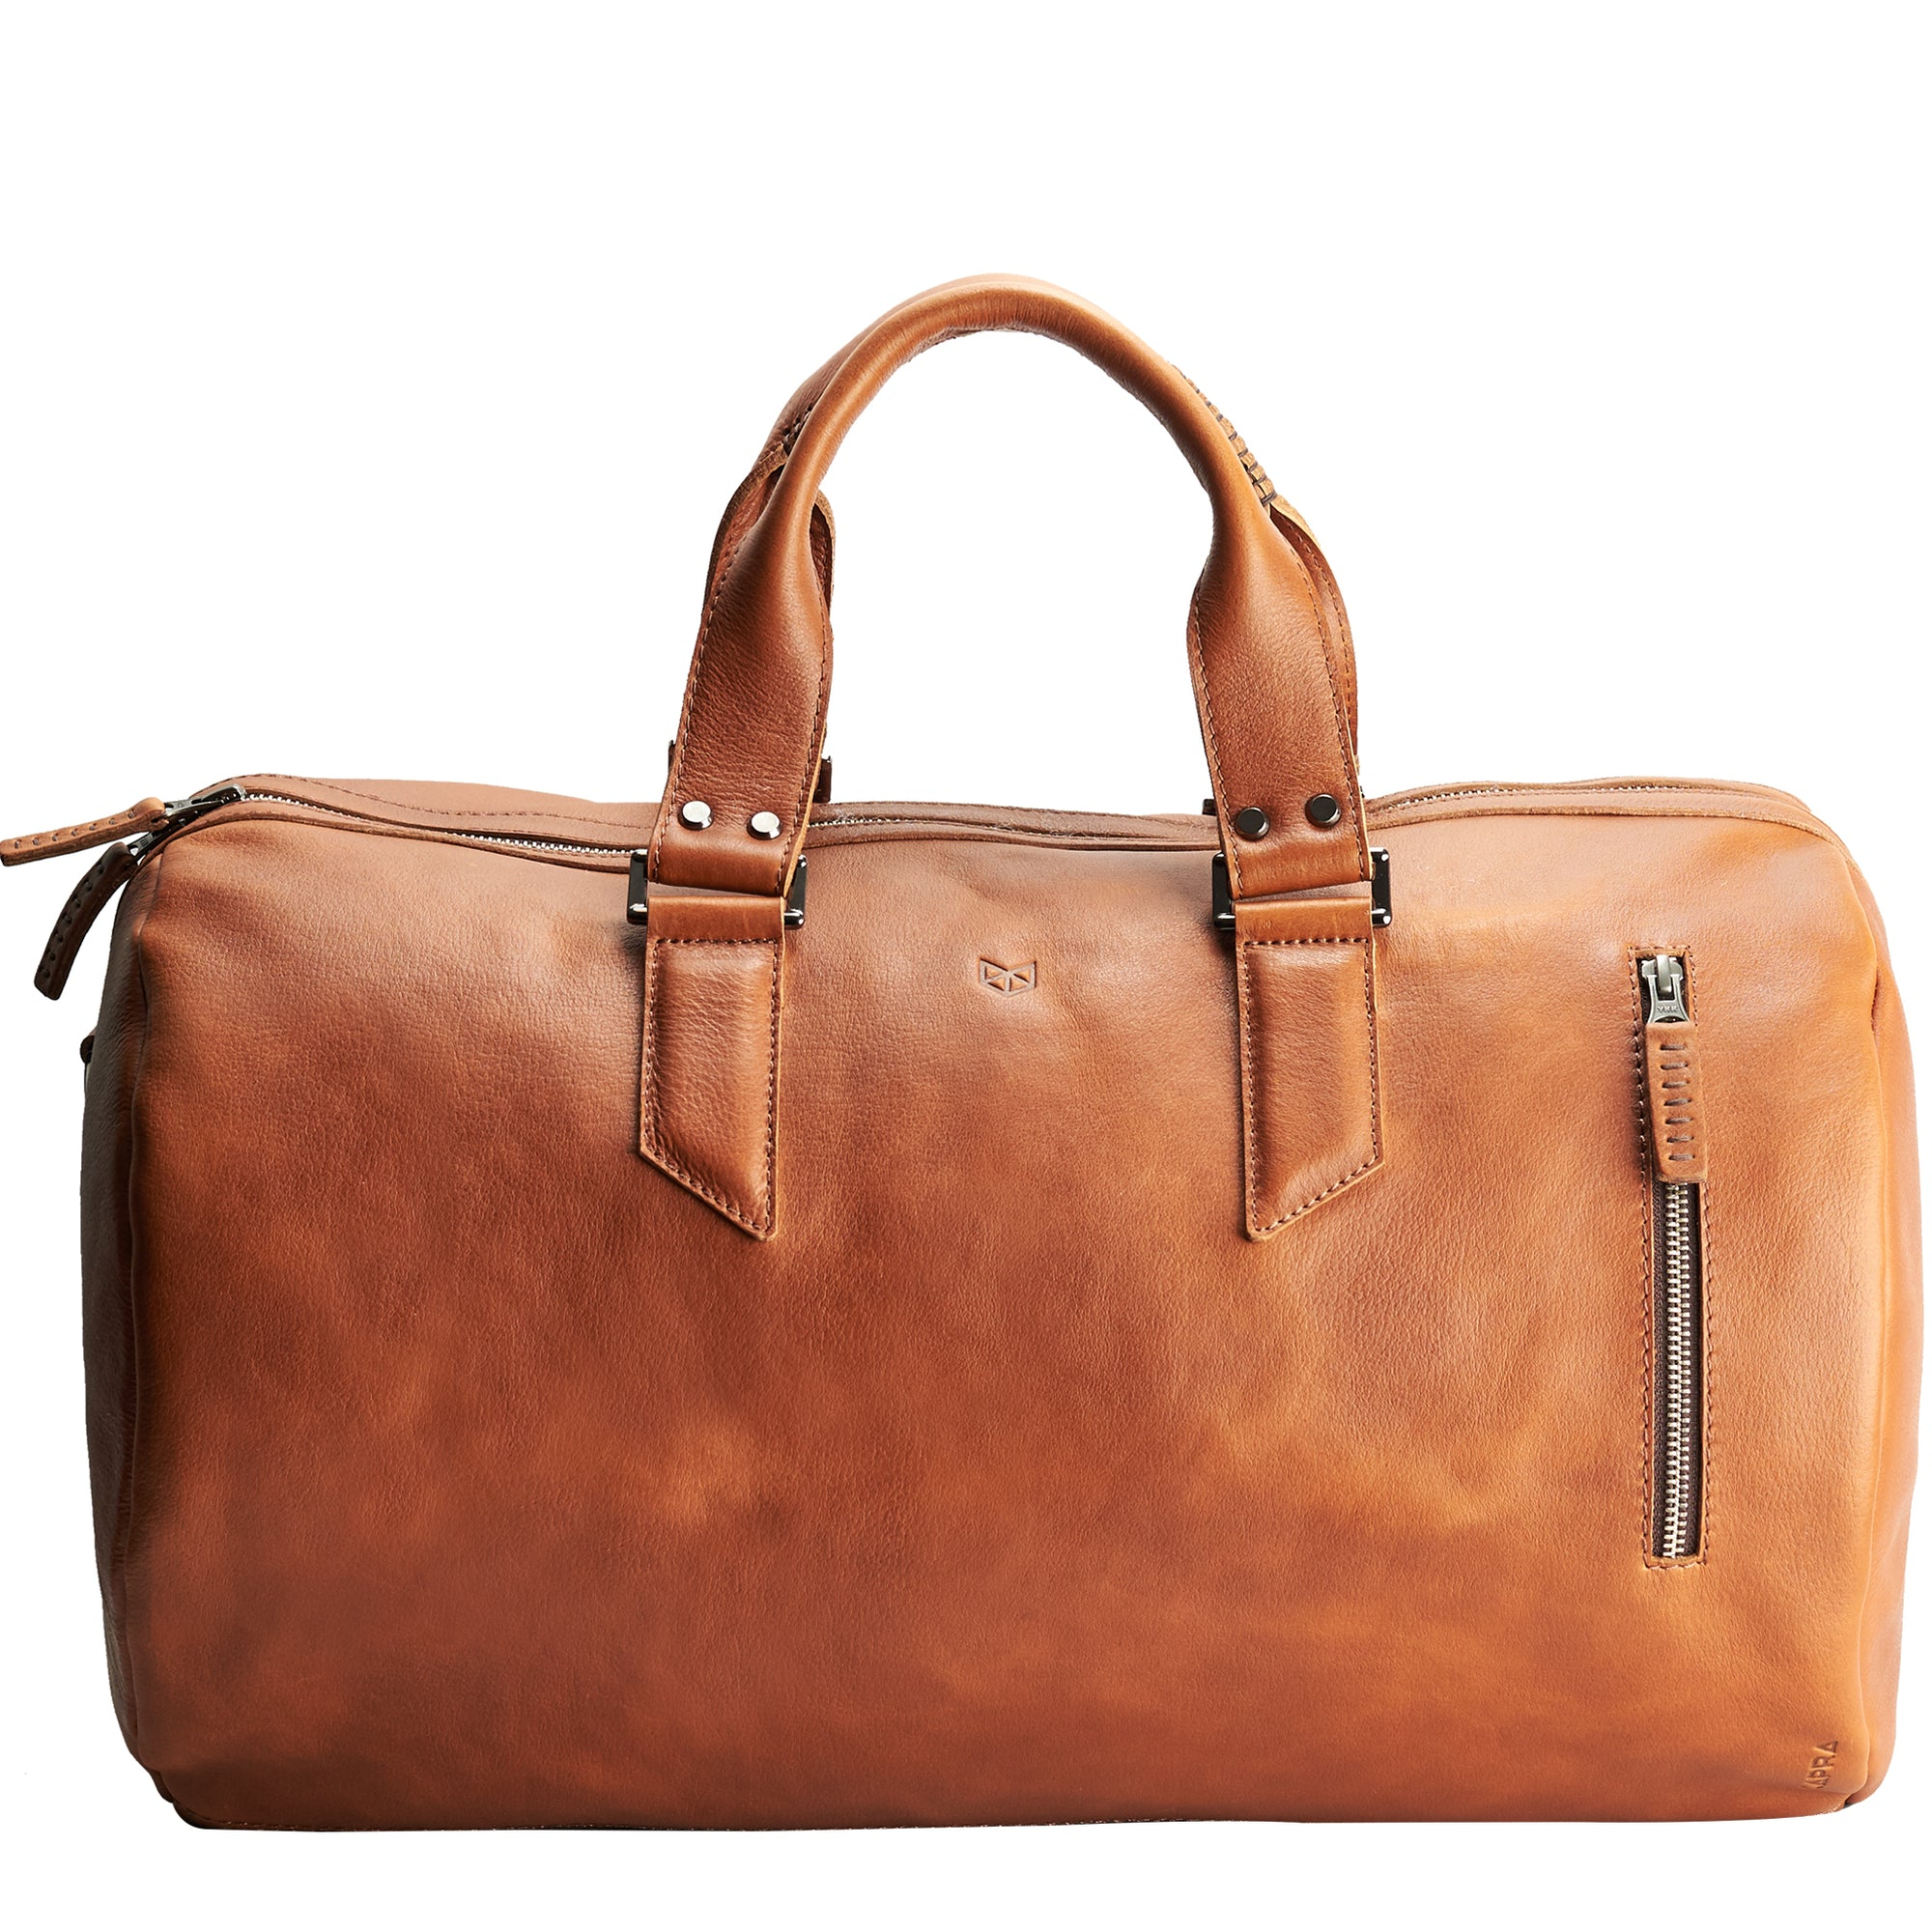 0d6fd4648174b6 Handmade Tan brown leather duffle bag for men. Mens designer shoulder bag